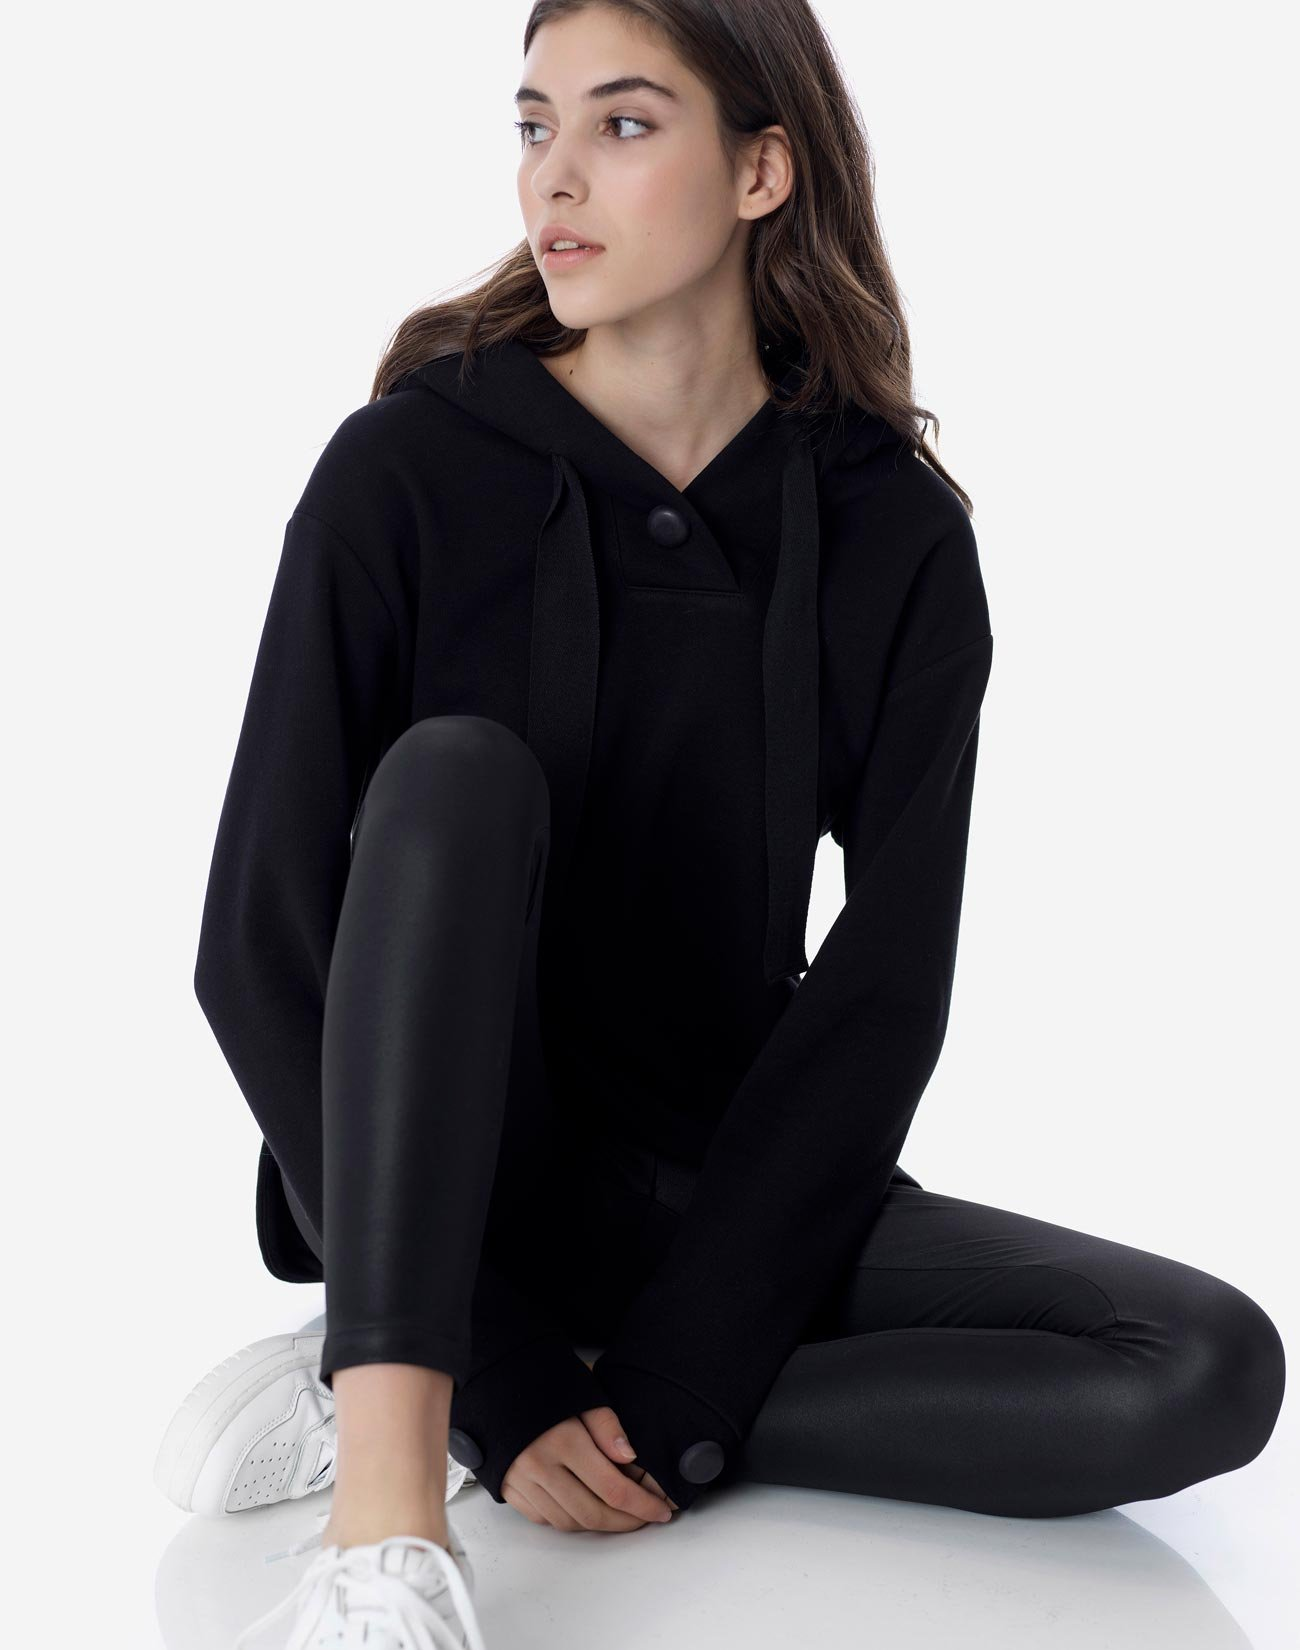 Hooded sweatshirt with buttons